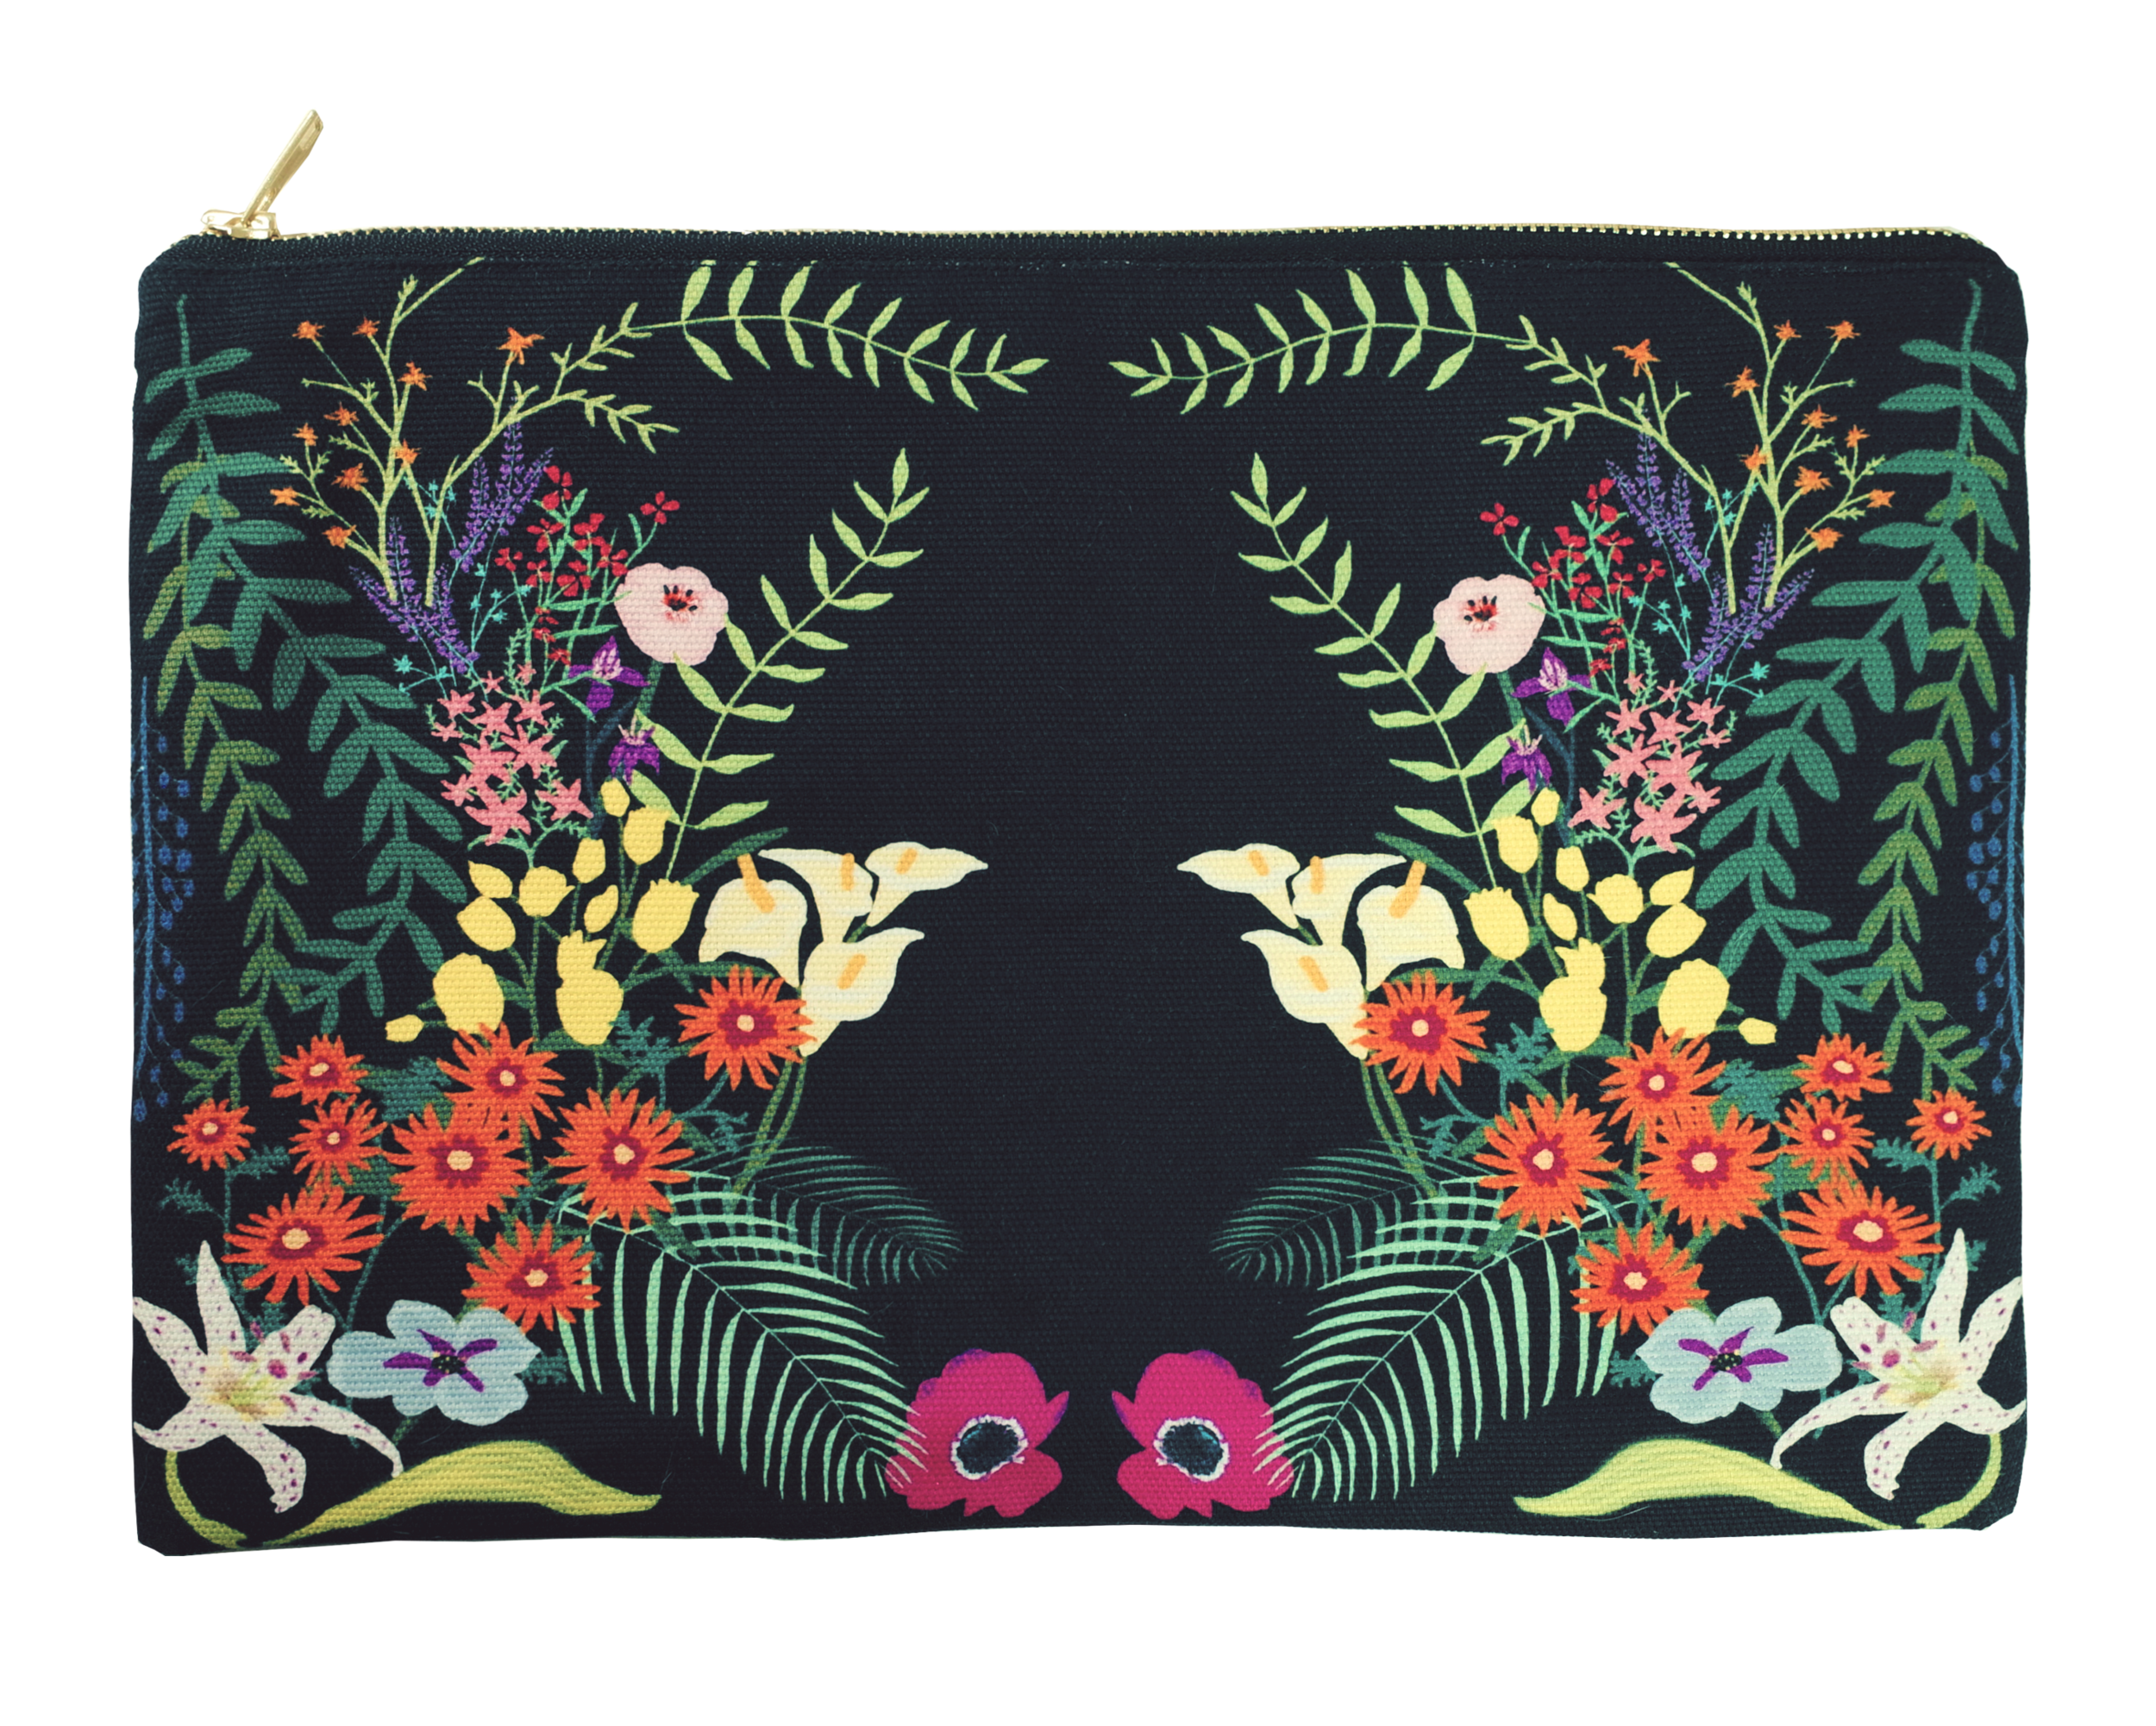 This print is inspired by Brazilian garden at night.